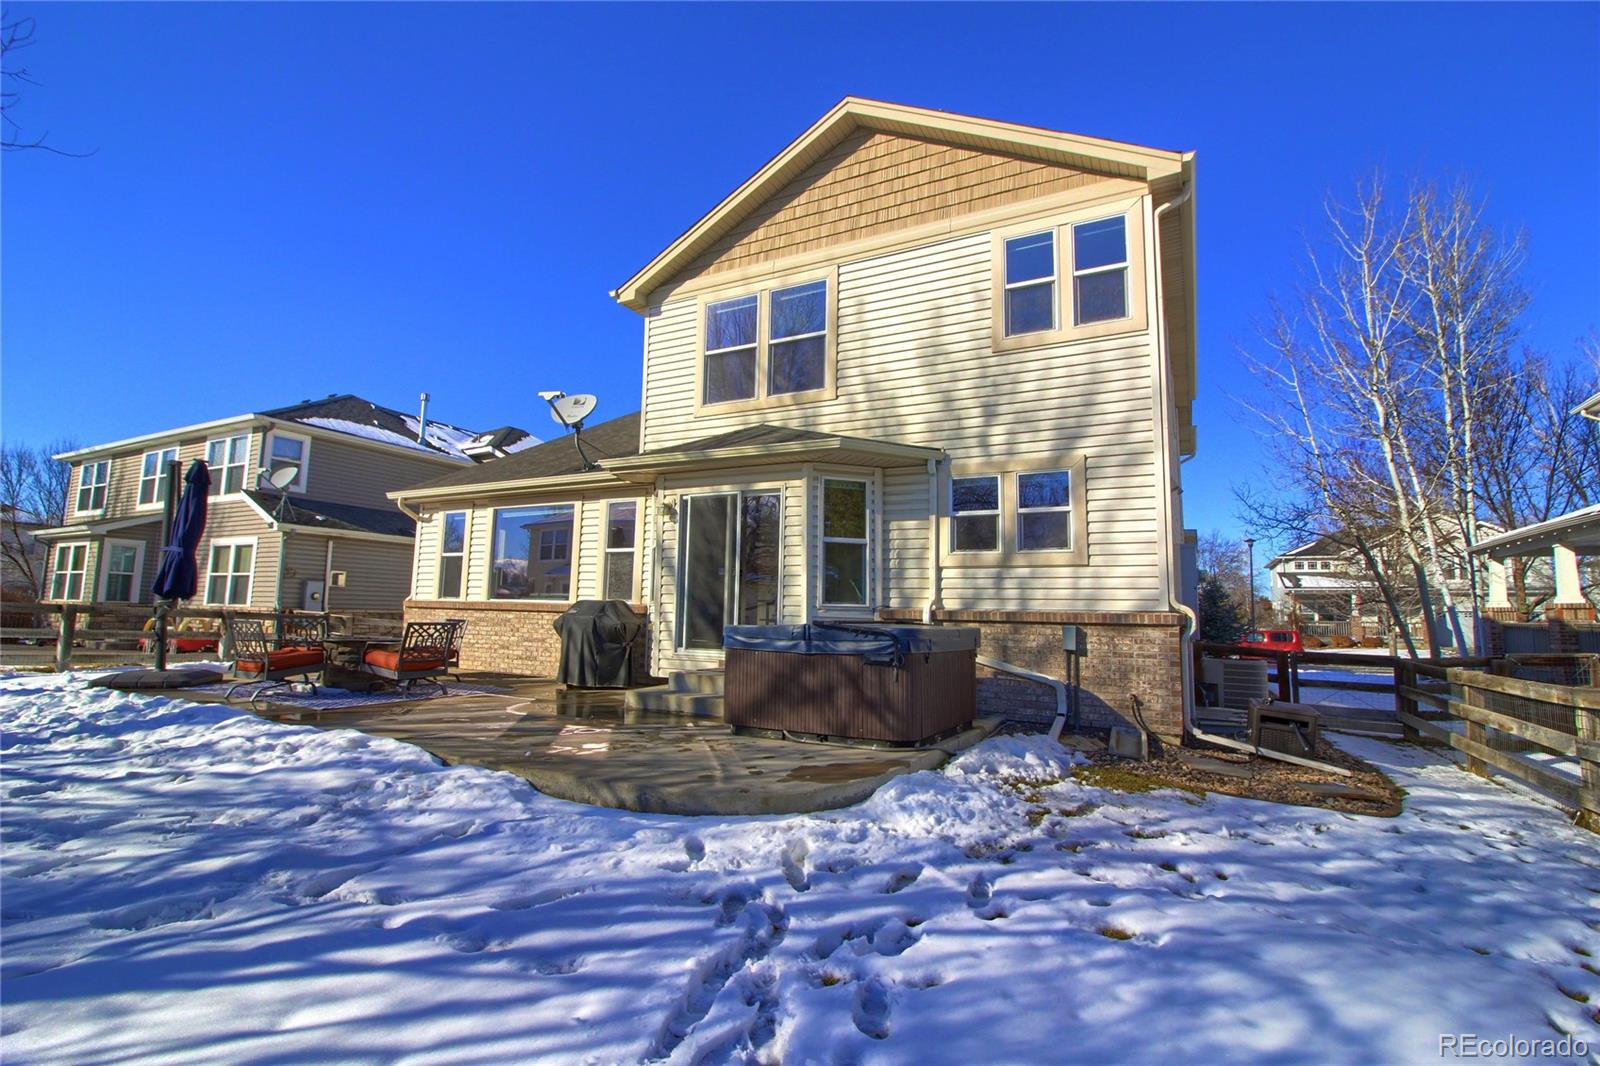 MLS# 3161208 - 30 - 1068 W 135th Court, Westminster, CO 80234